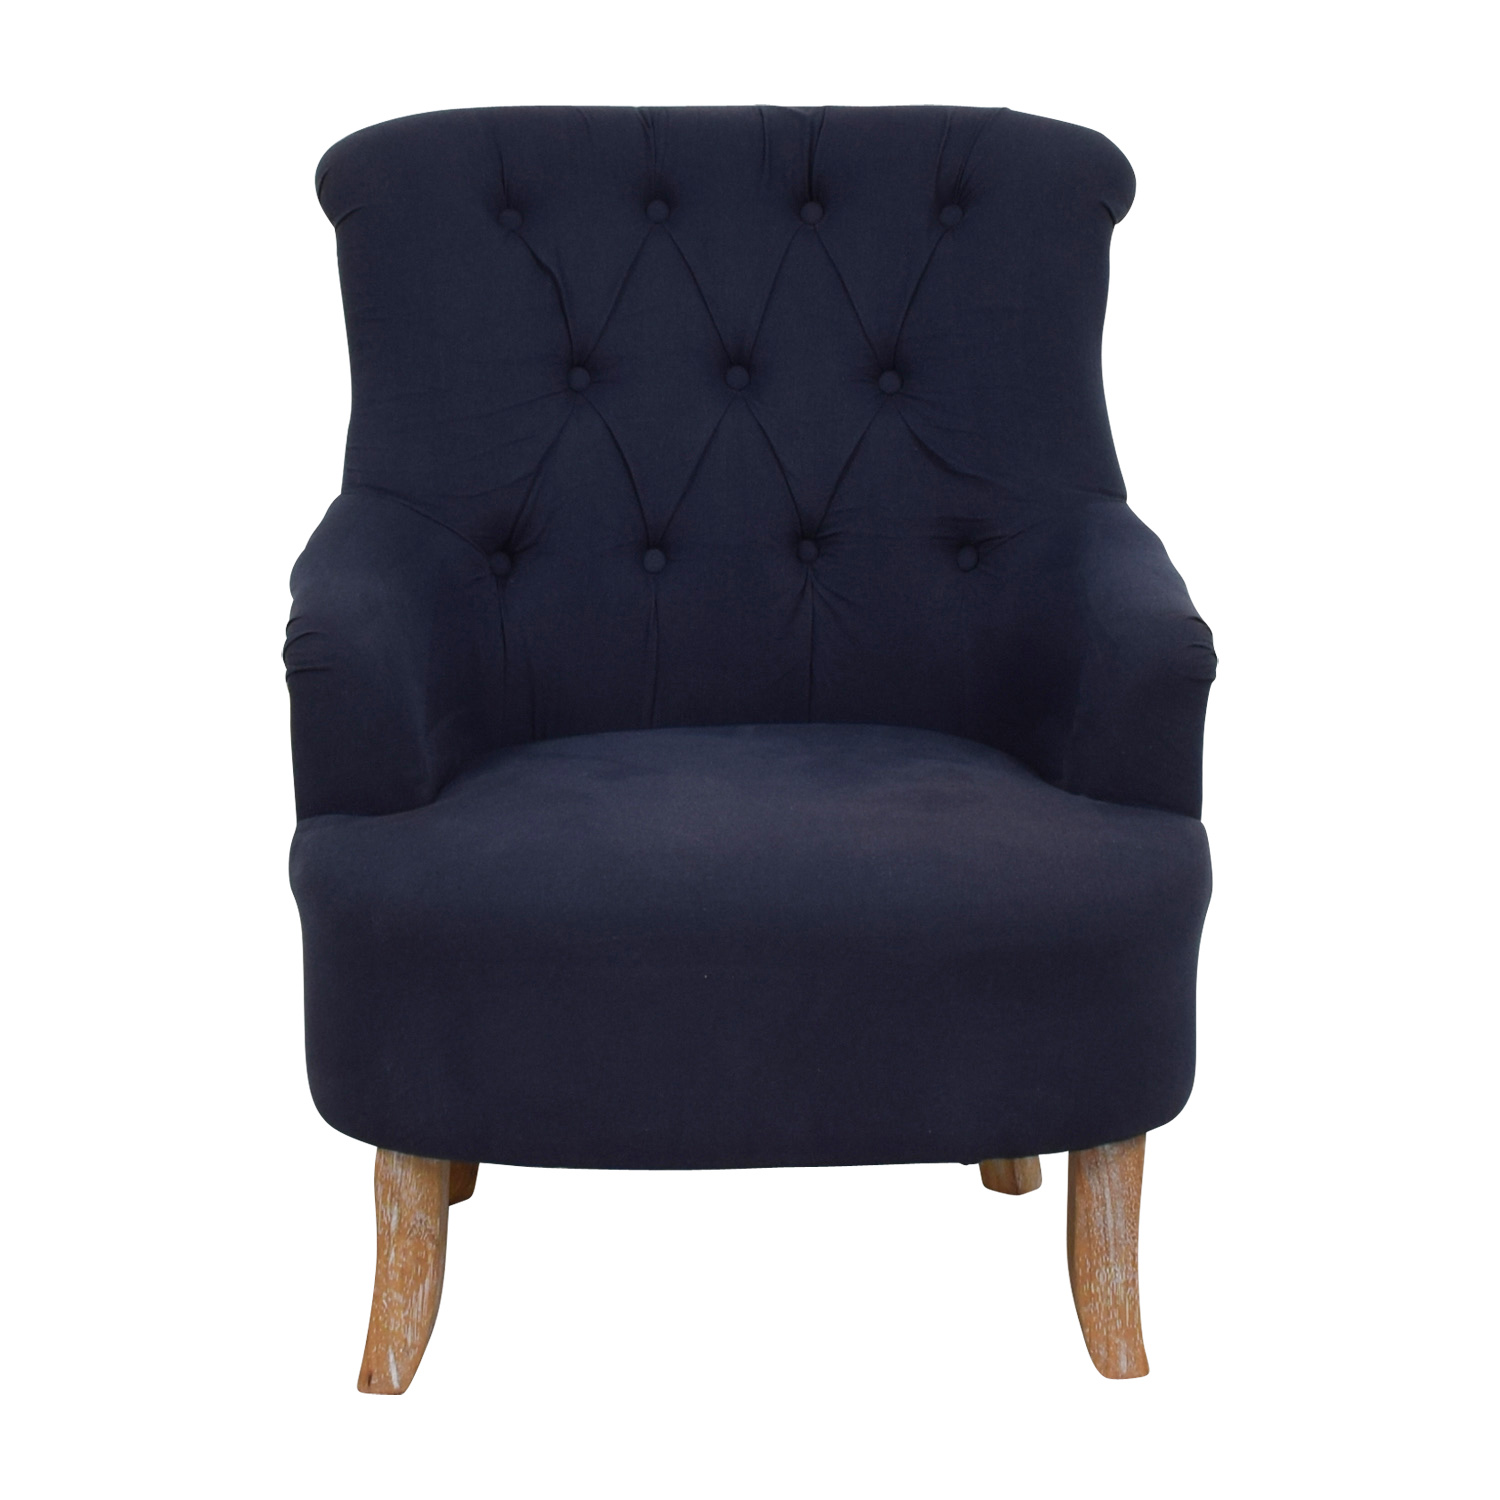 Pier 1 Imports Pier 1 Imports Blue and Tan Tufted Armchair Accent Chairs